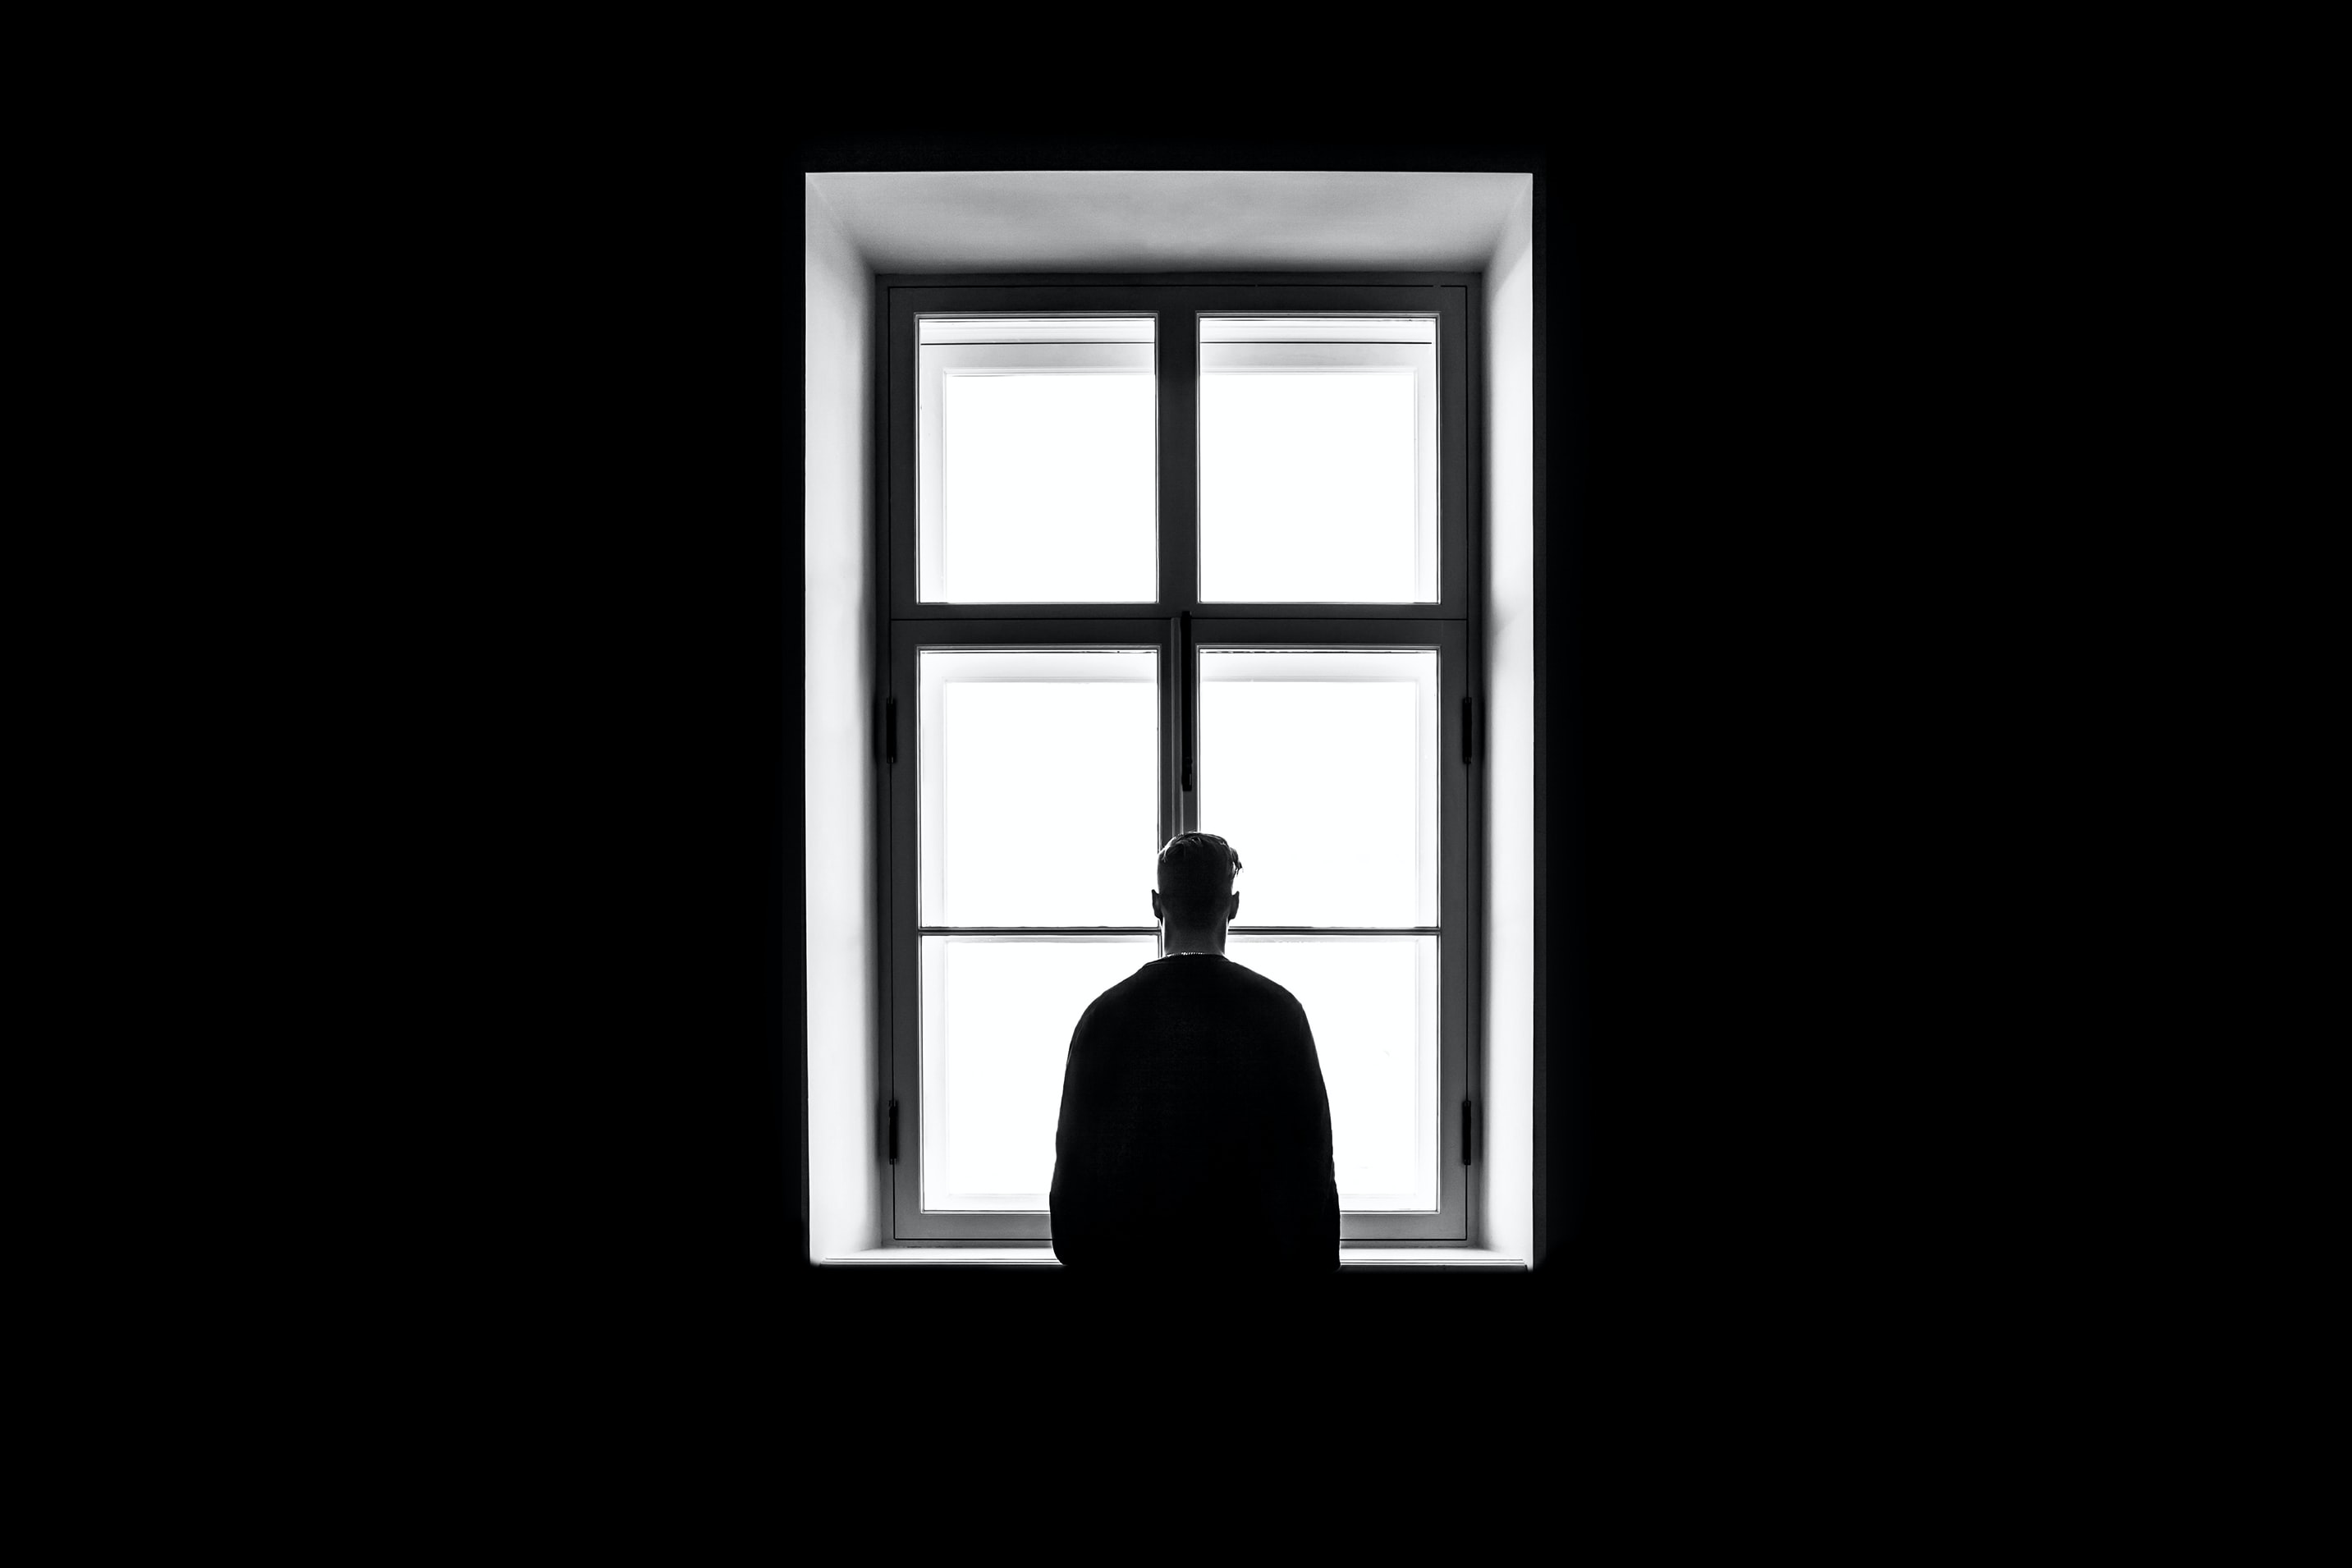 man standing in front of the window dreaming of a better life